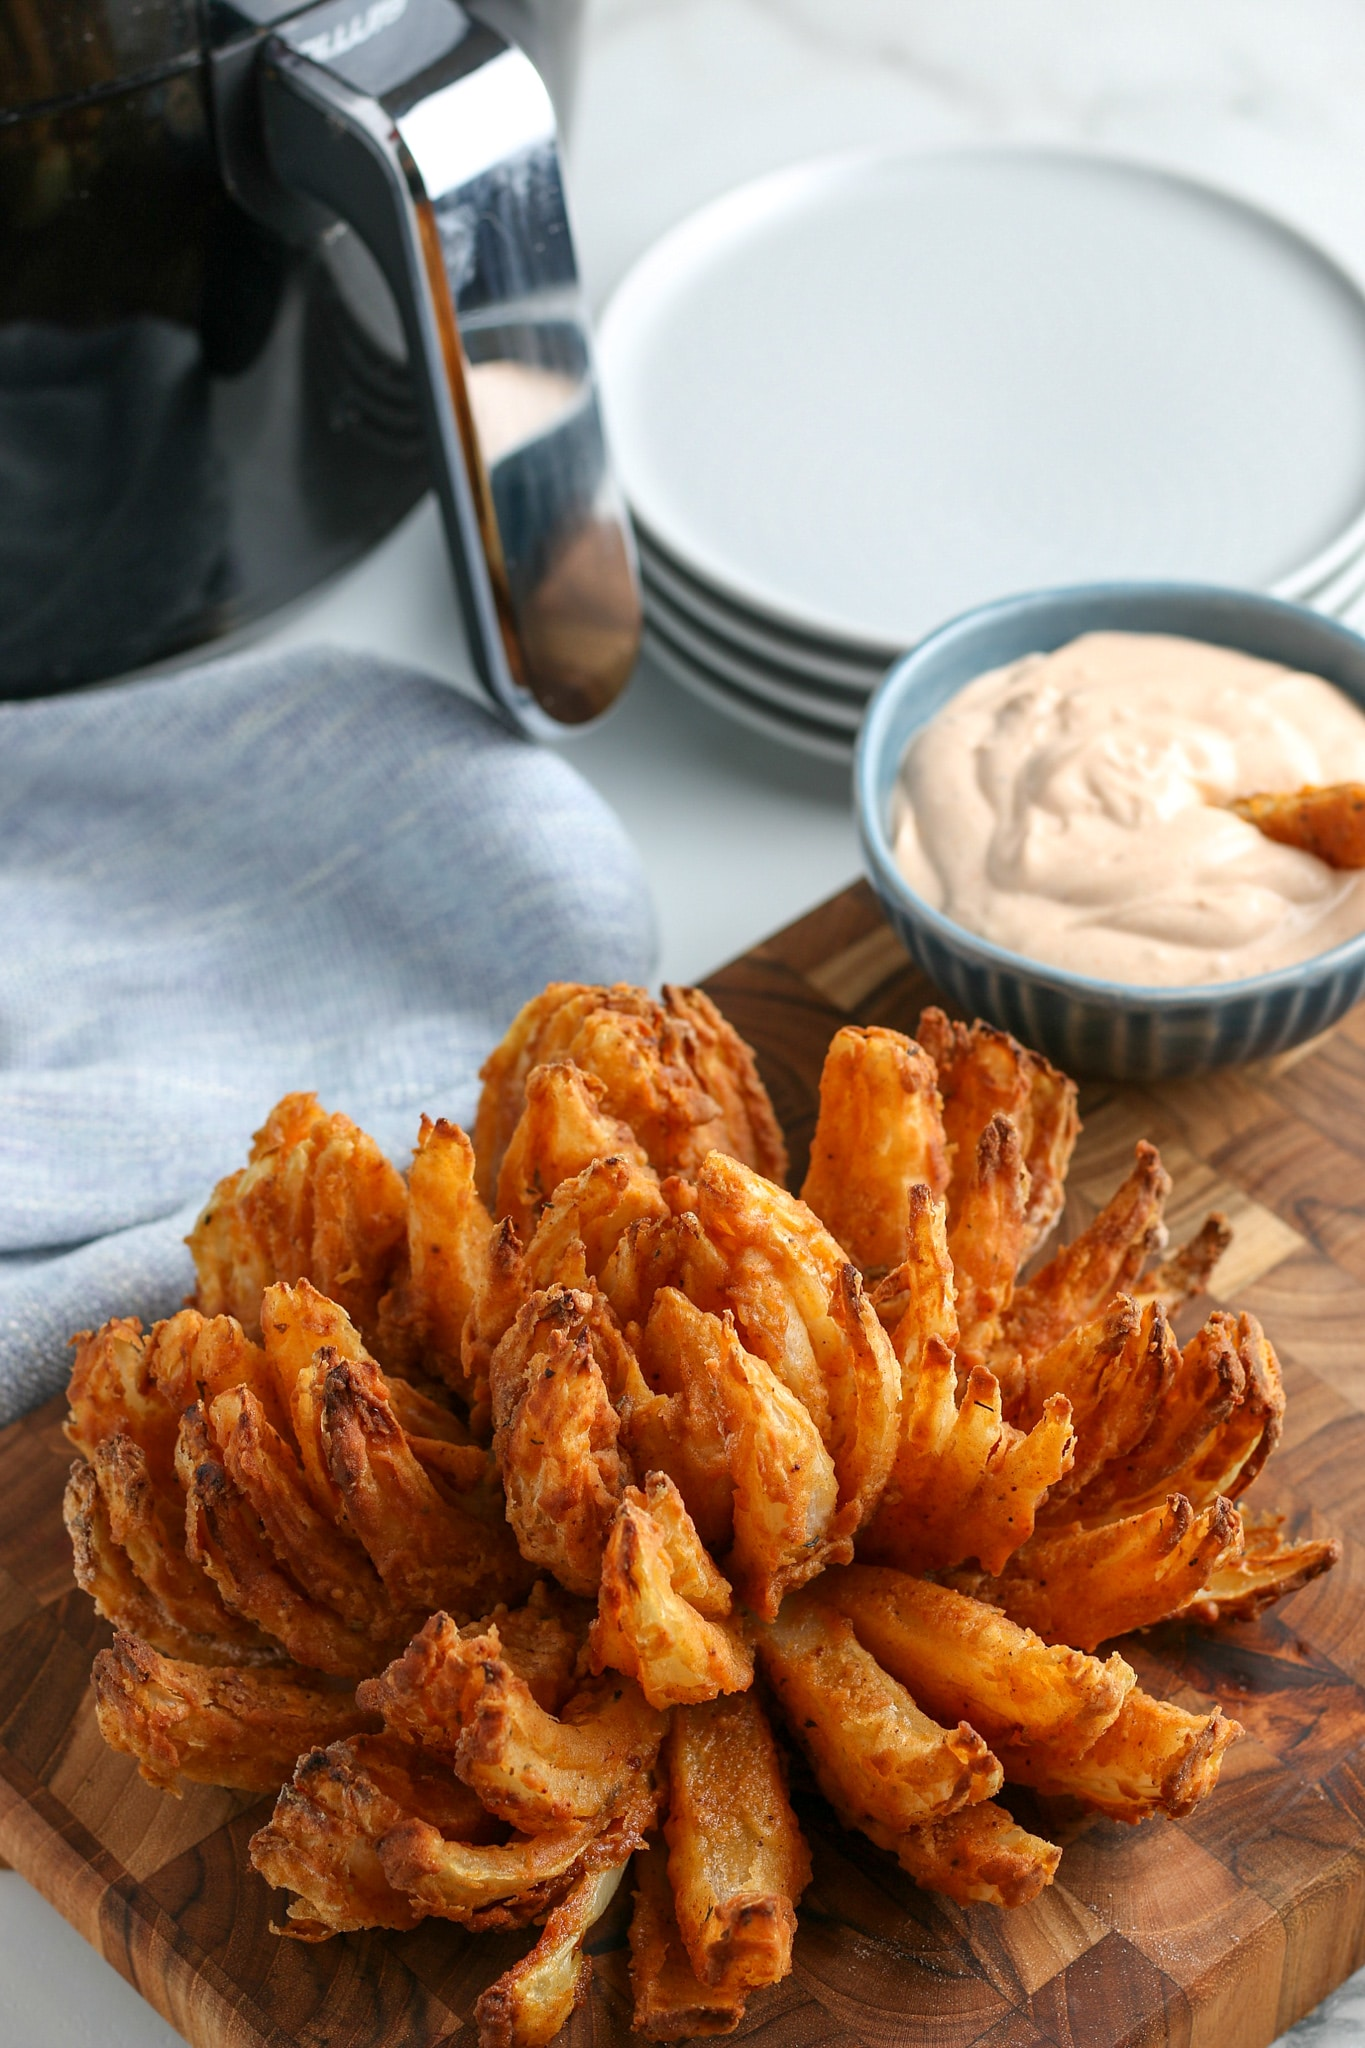 the finished air fried blooming onion recipe with horseradish sauce in the background.